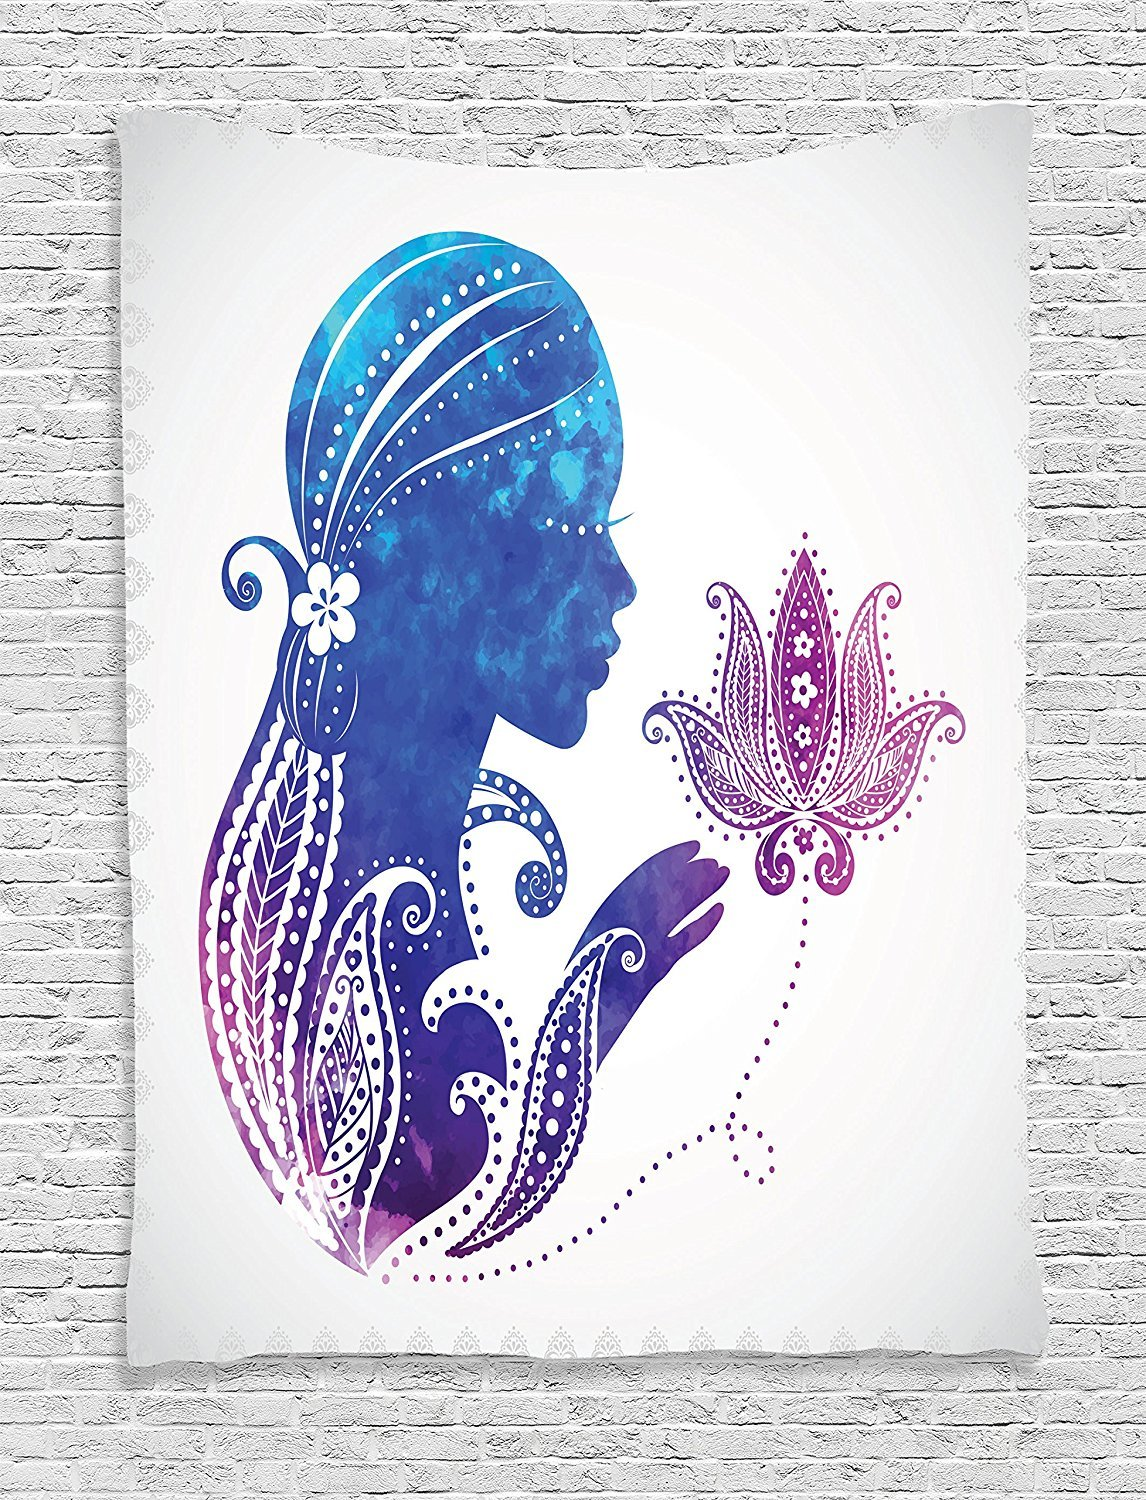 Teen Girls Decor Tapestry Wall Hanging, Girl's Silhouette with Flowers on Her Hair Floral Ornaments Meditation Spa Artwork, Bedroom Living Room Dorm Decor, 60 W x 80 L Inches, Purple Blue